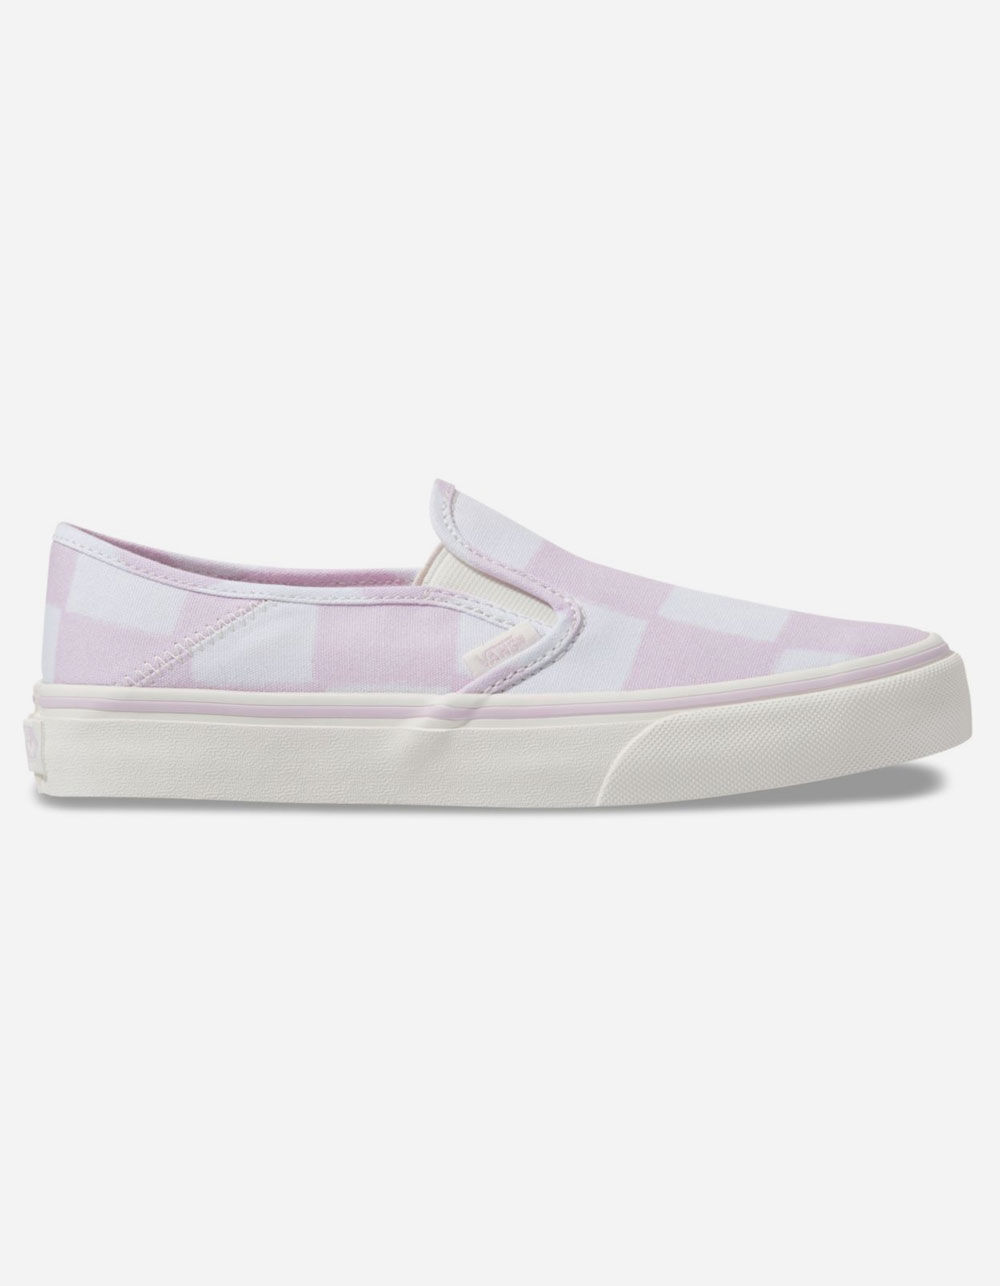 VANS Big Check Slip-On SF Lilac & Marshmallow Shoes